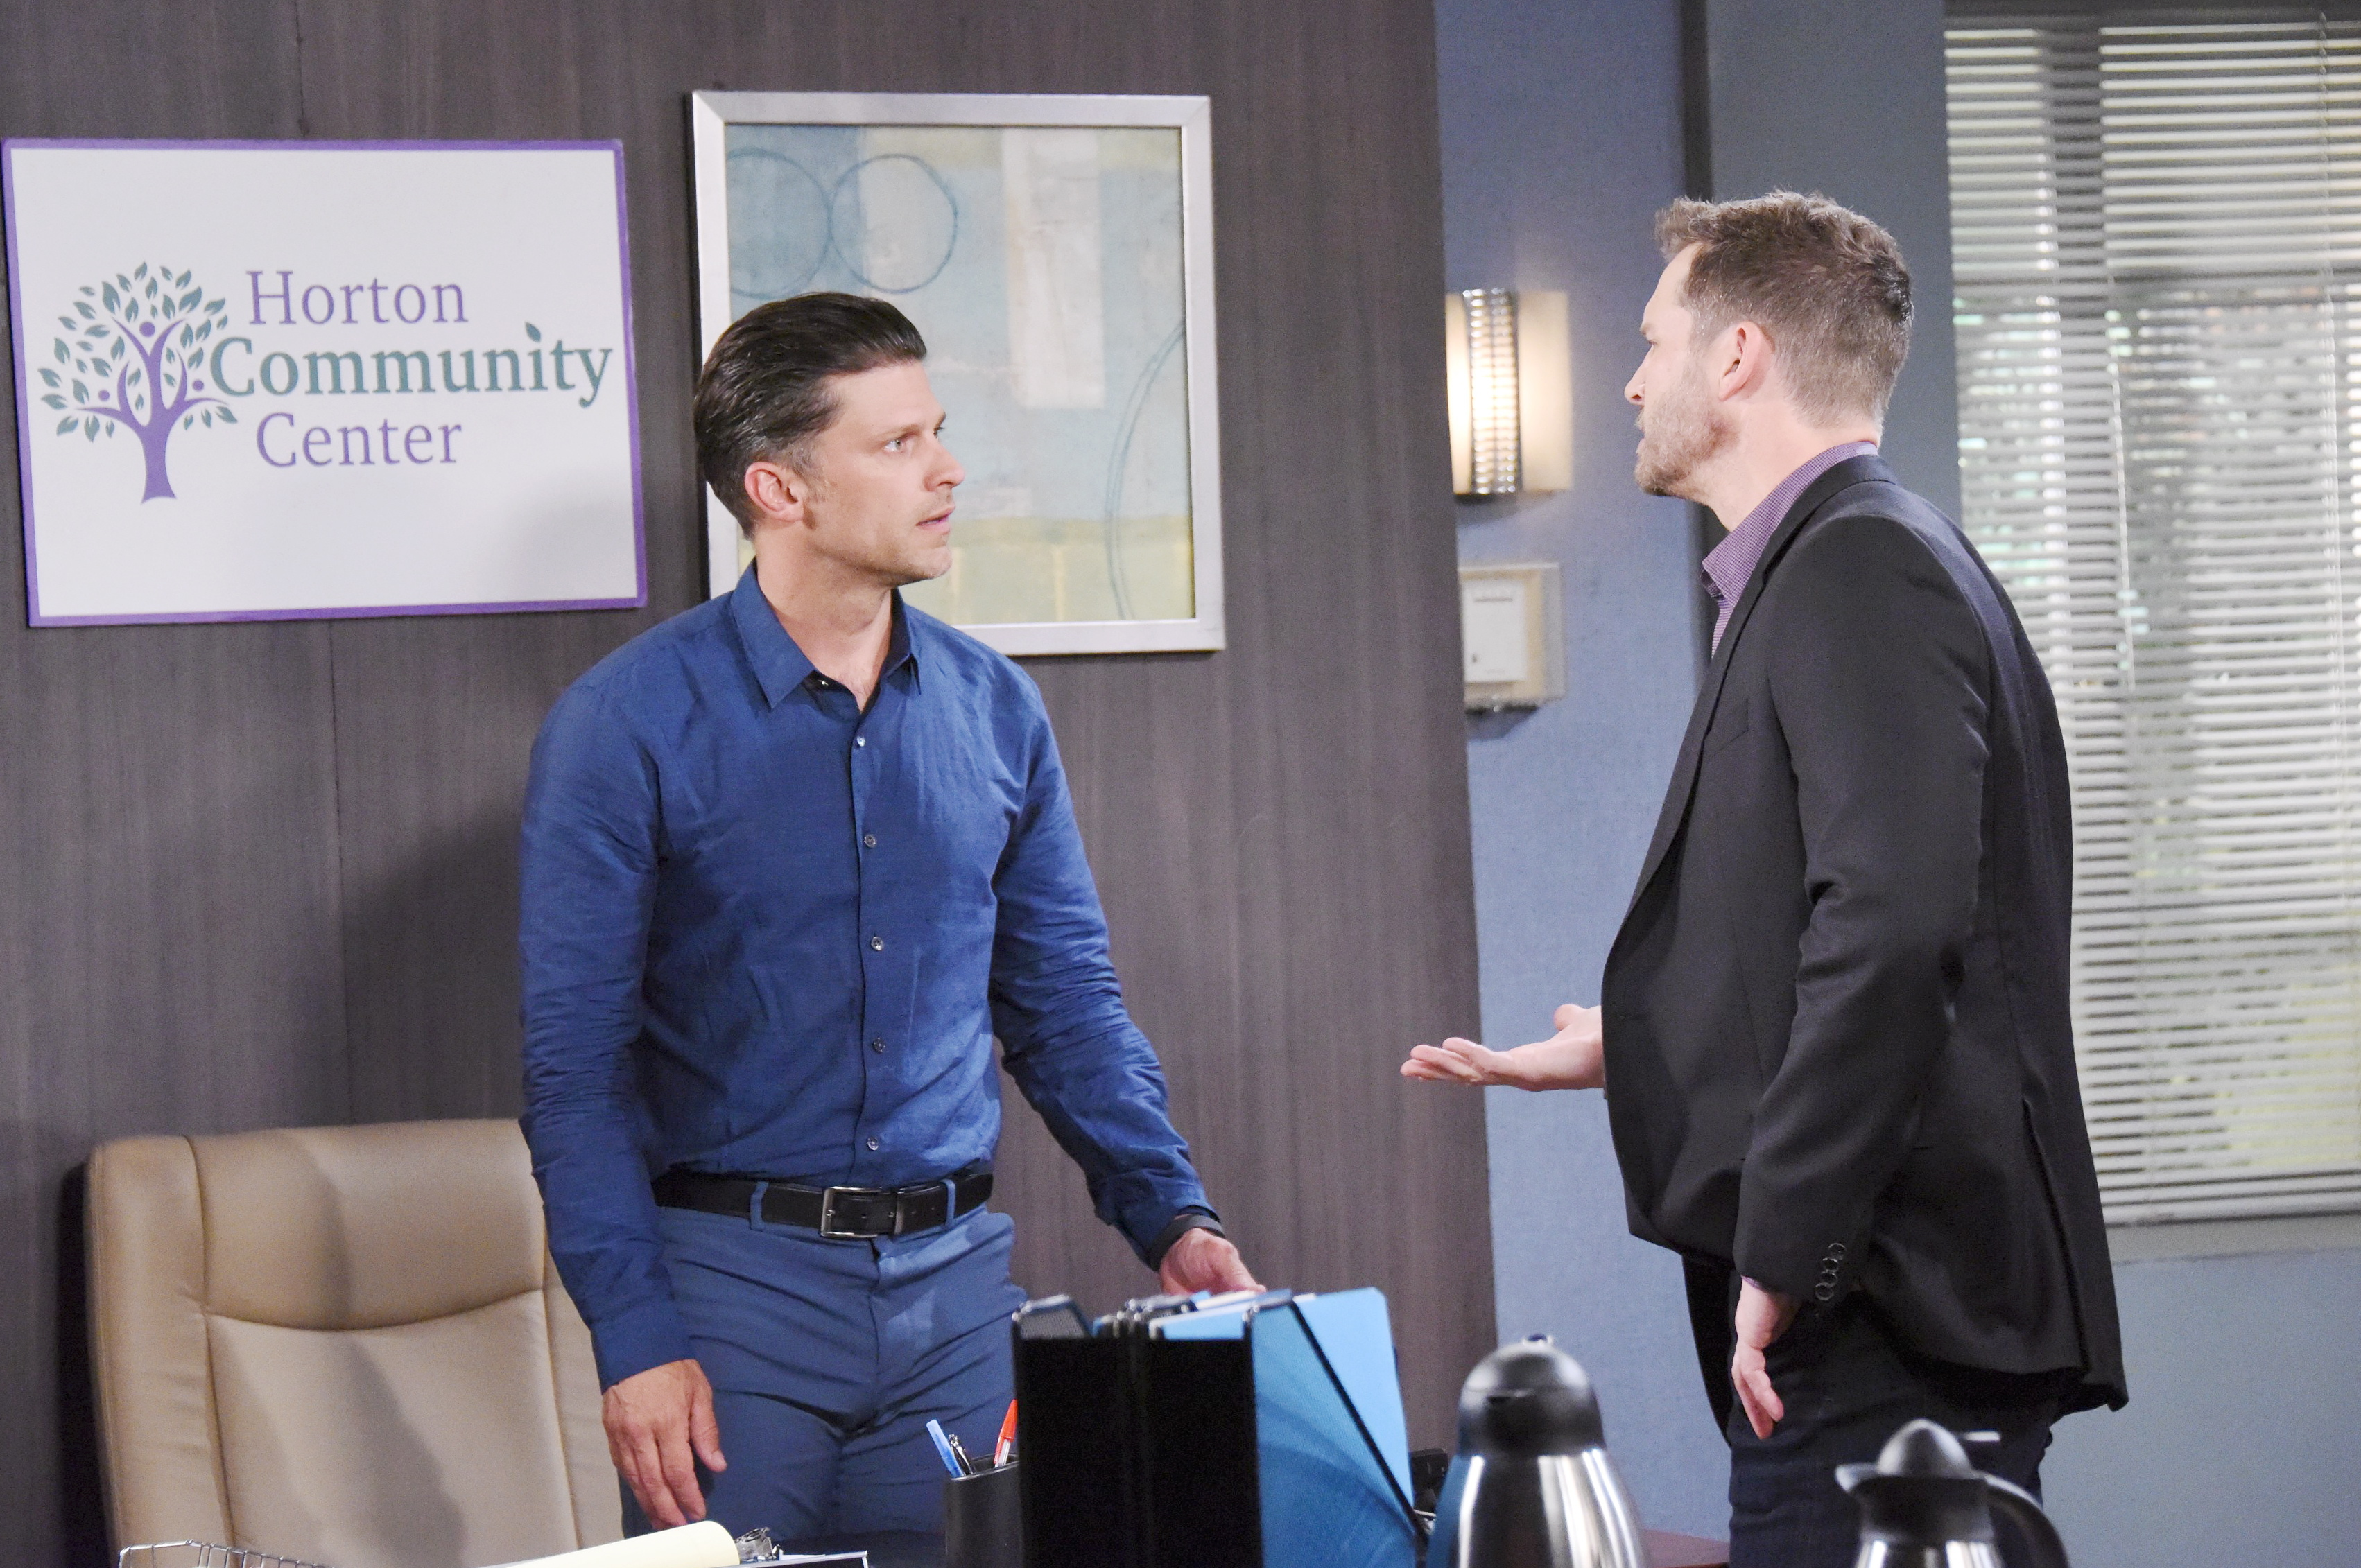 Days Of Our Lives Spoilers: •Eric confronts Brady about Nicole's decision to leave town with Holly.